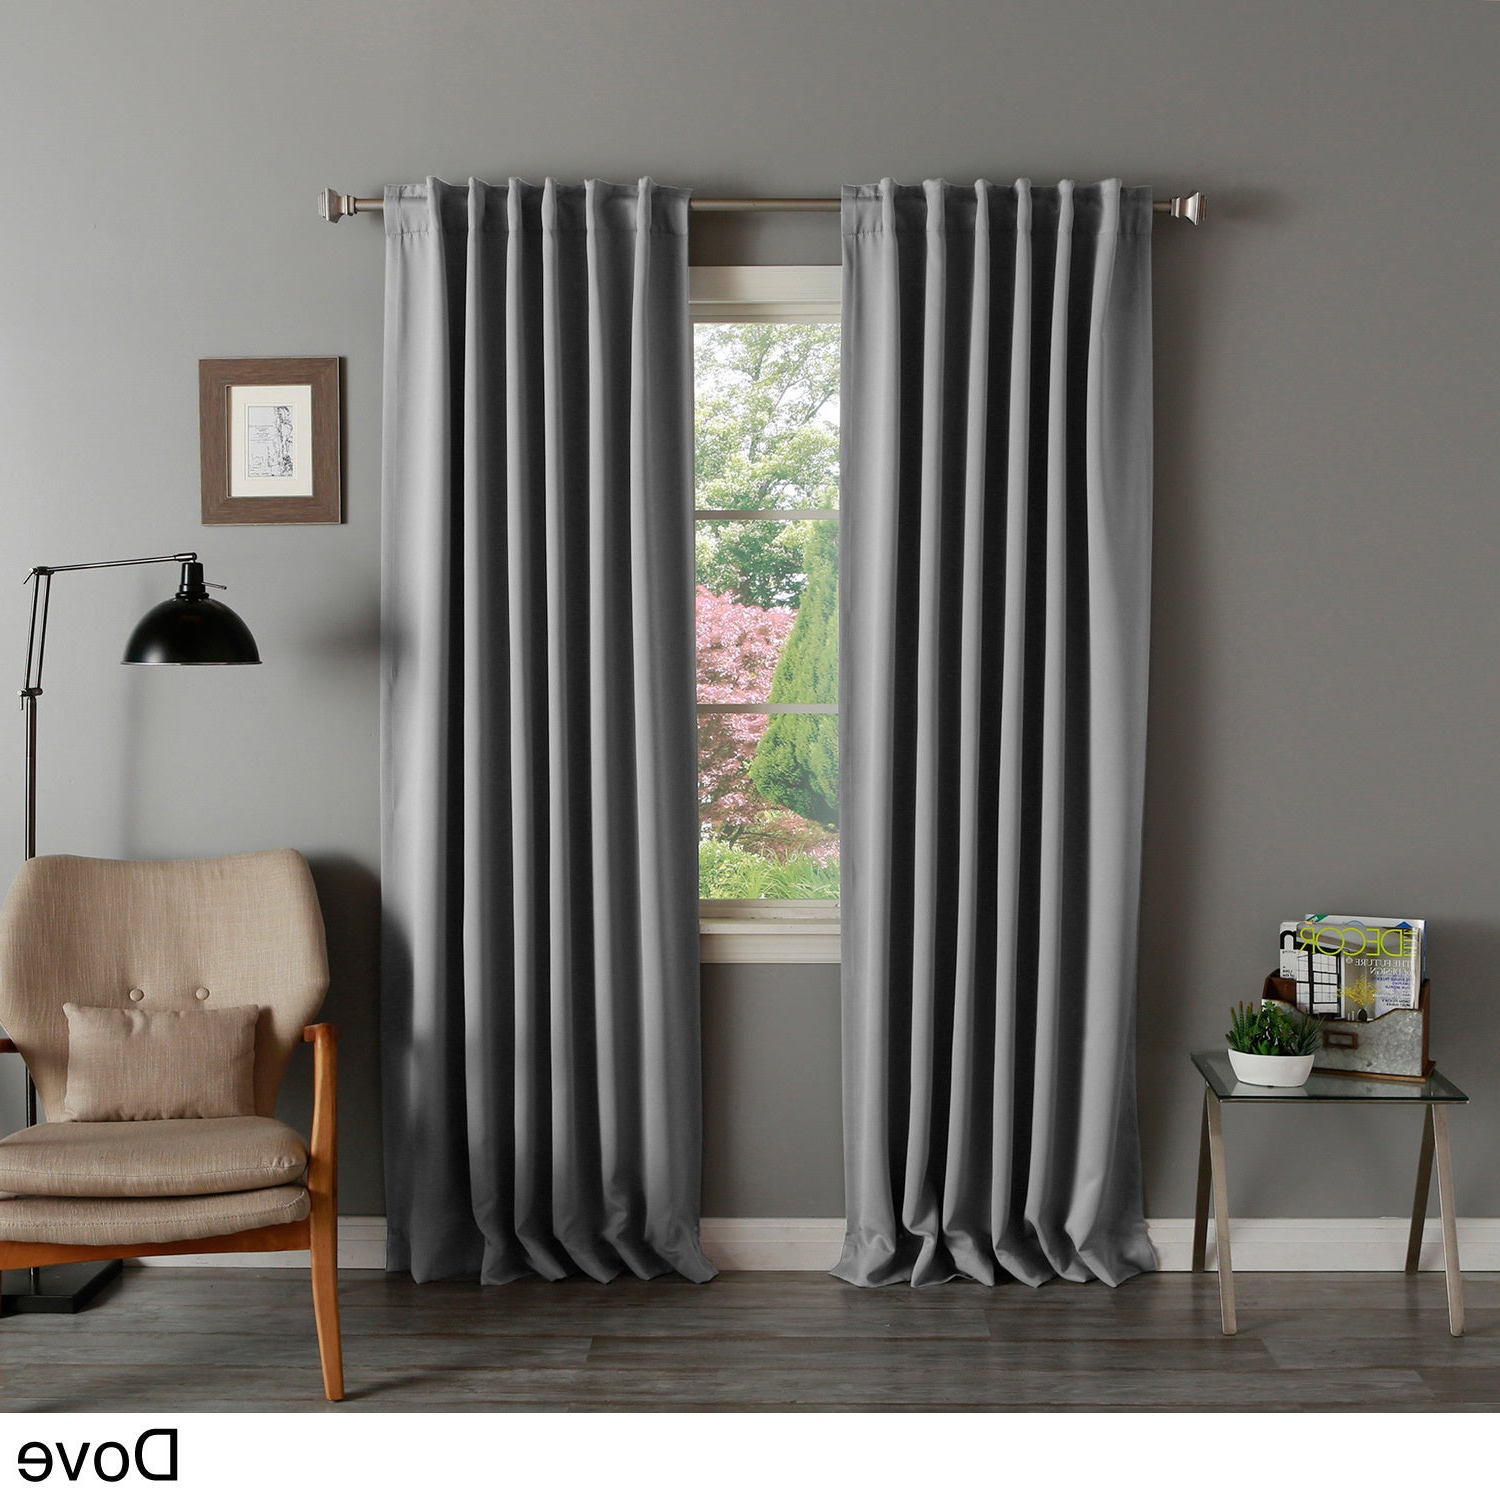 Solid Insulated Thermal Blackout Curtain Panel Pair Intended For Famous Solid Insulated Thermal Blackout Curtain Panel Pairs (View 9 of 20)